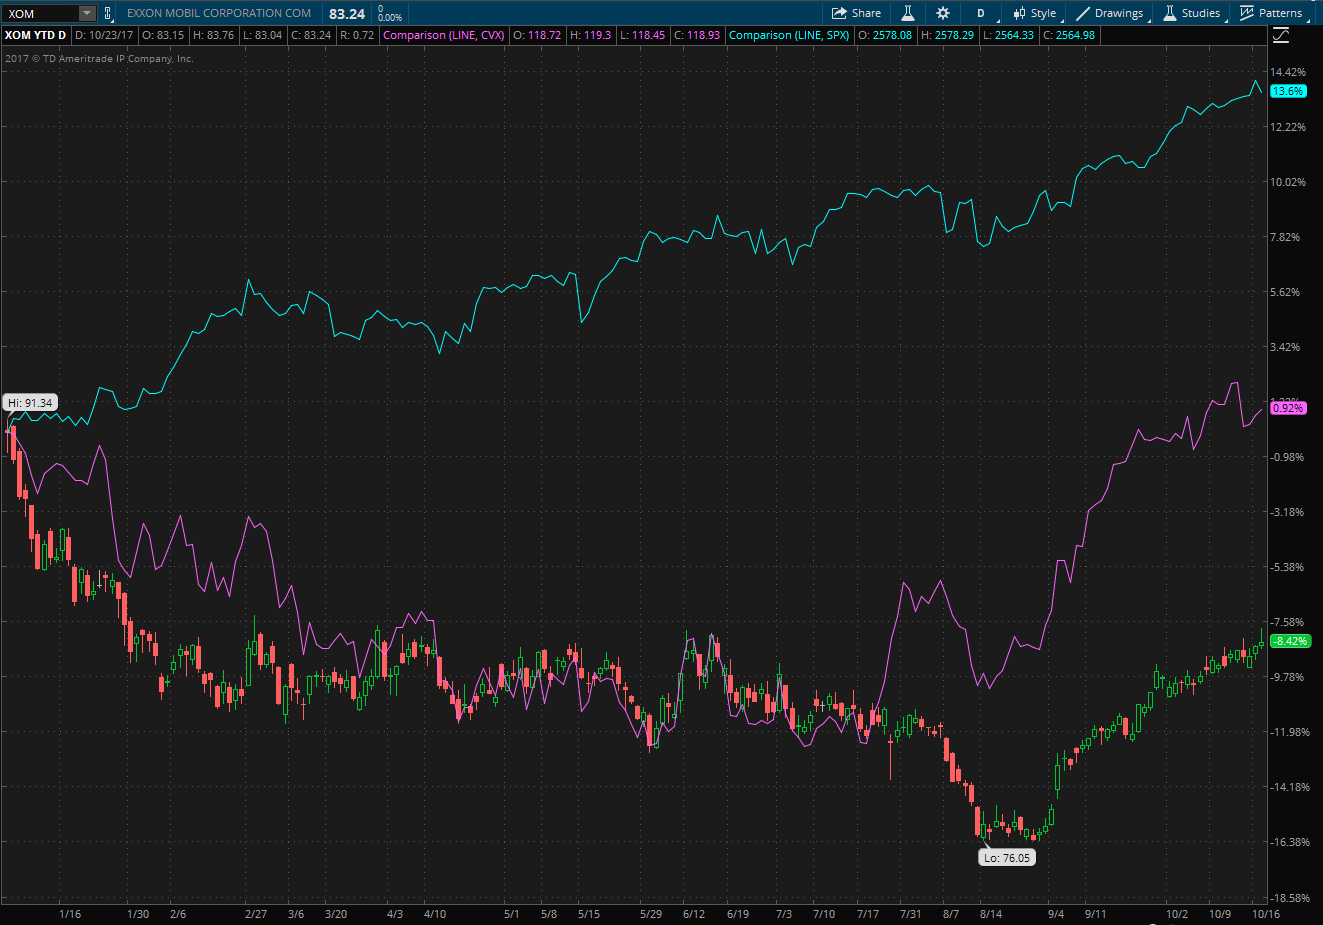 Chart showing YTD performance of XOM and CVX stocks compared to the S&P 500.